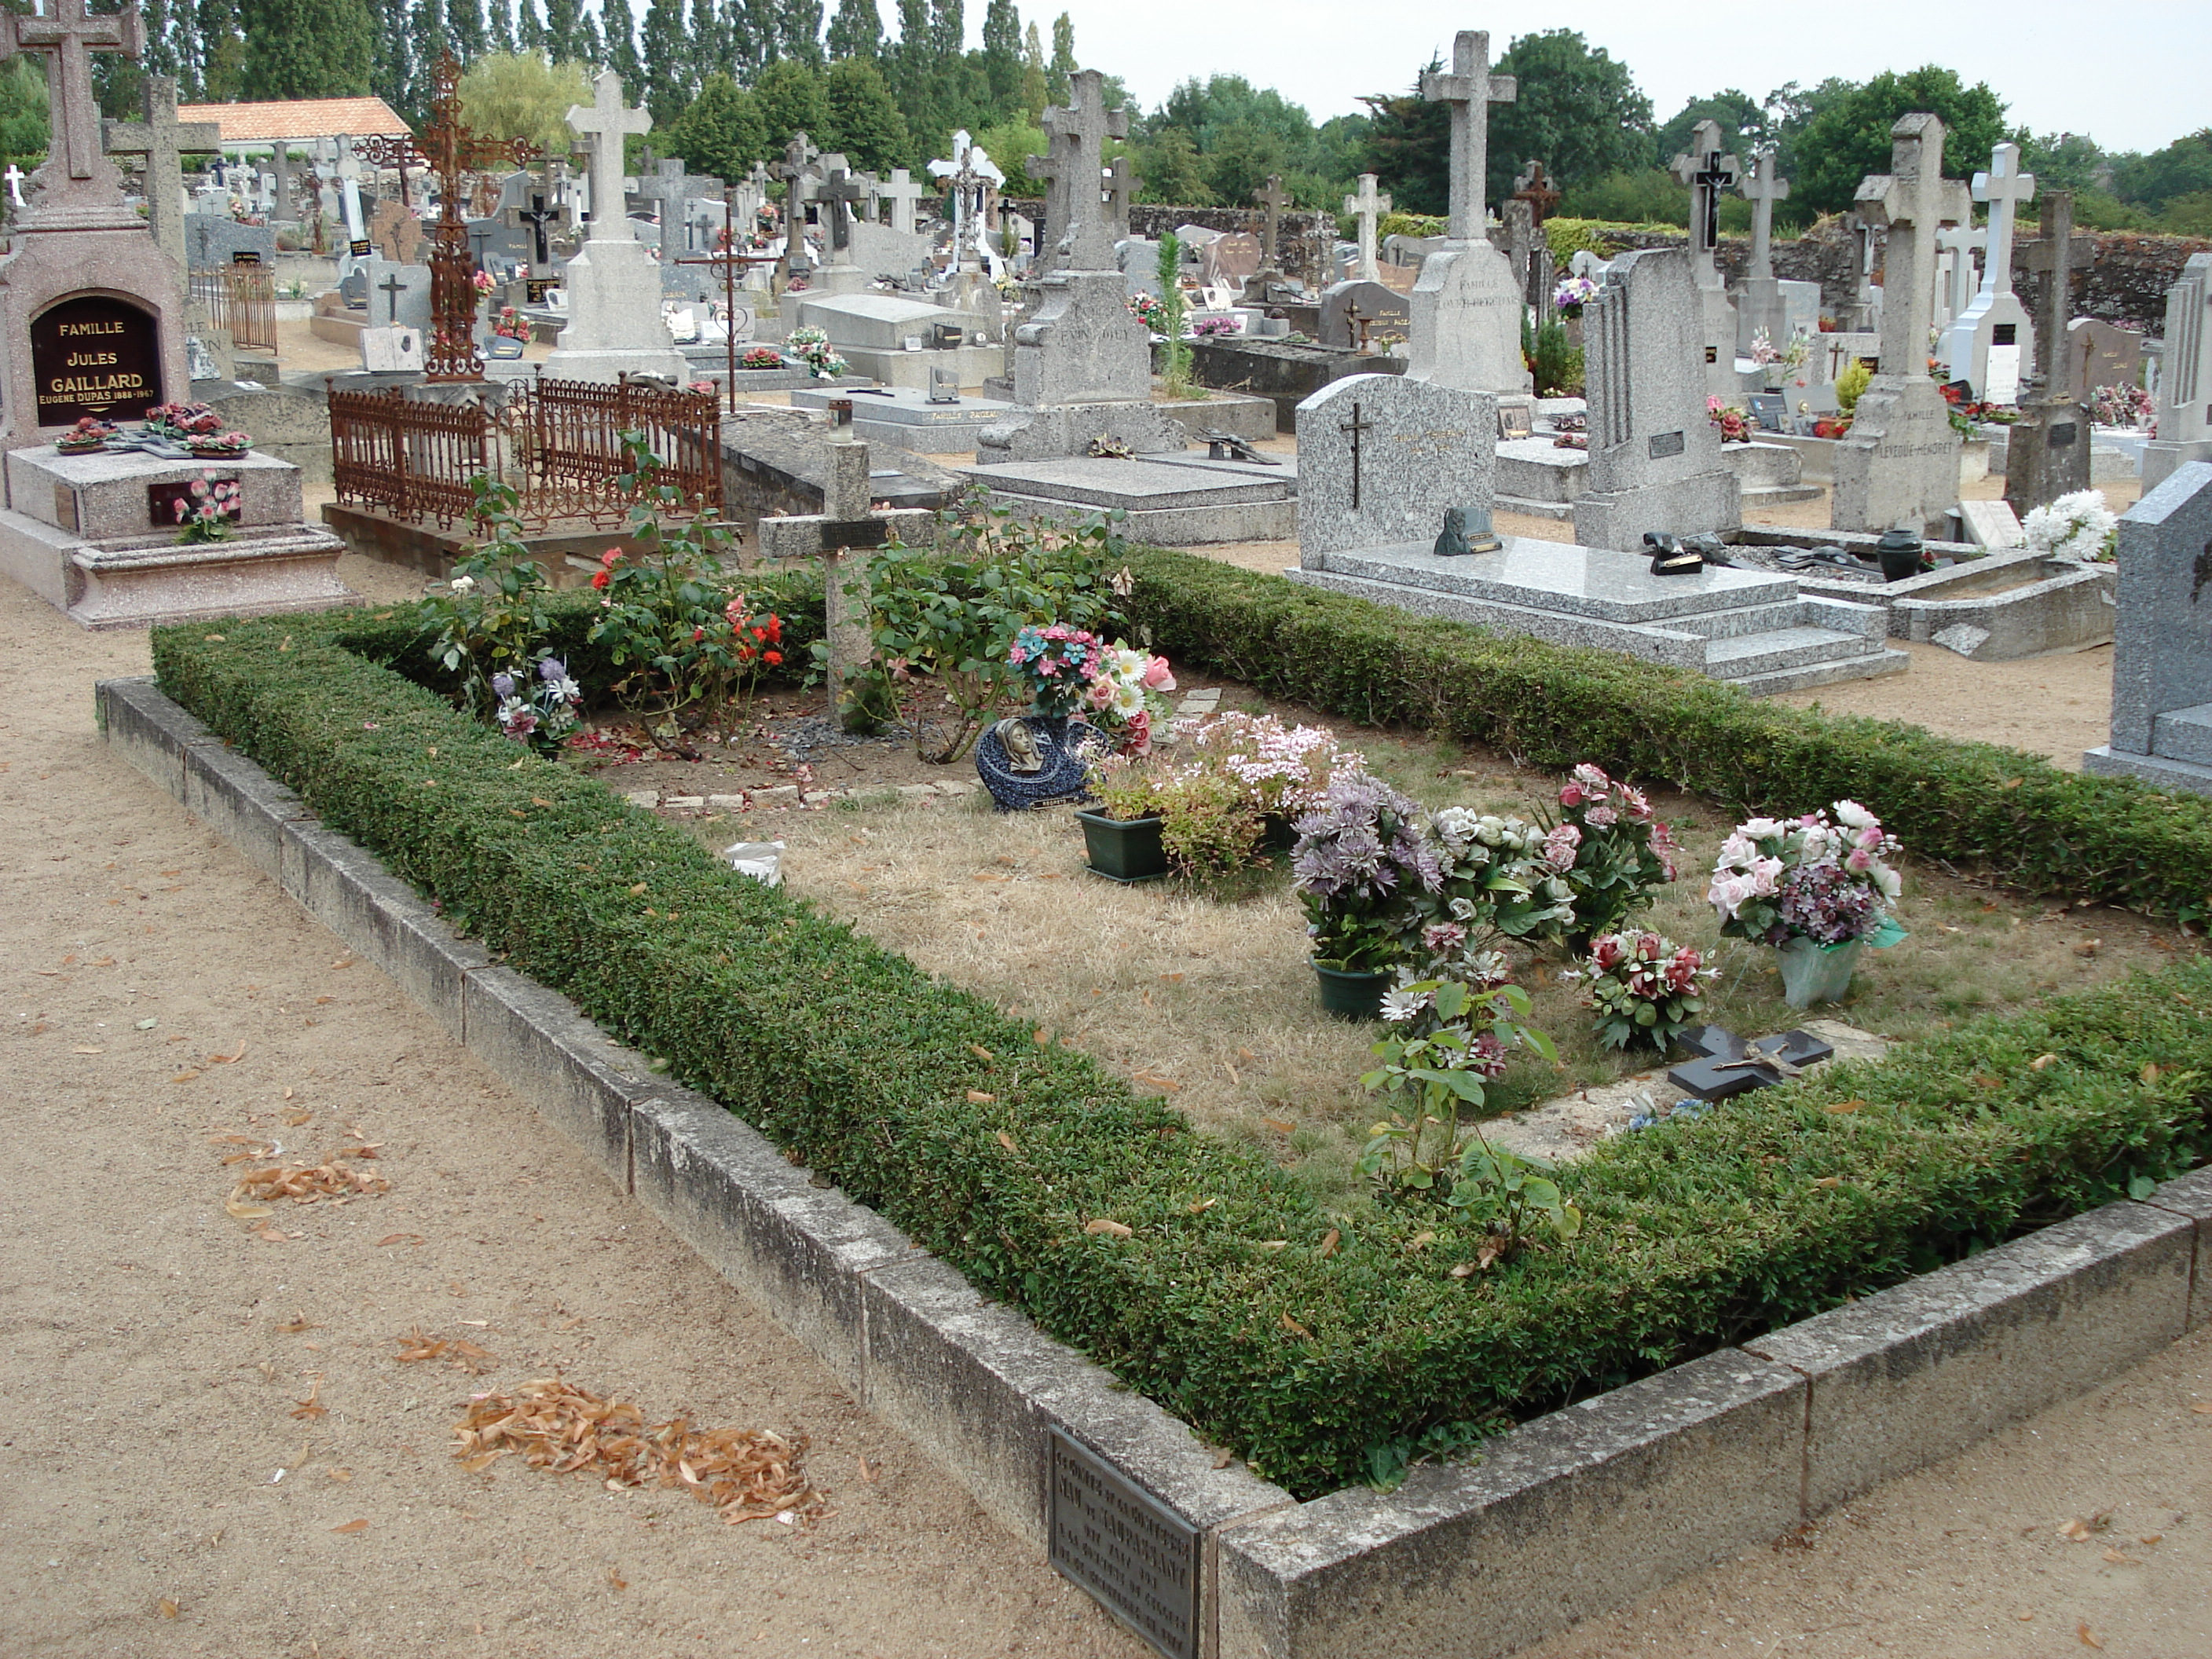 The tomb of Louis de Funès